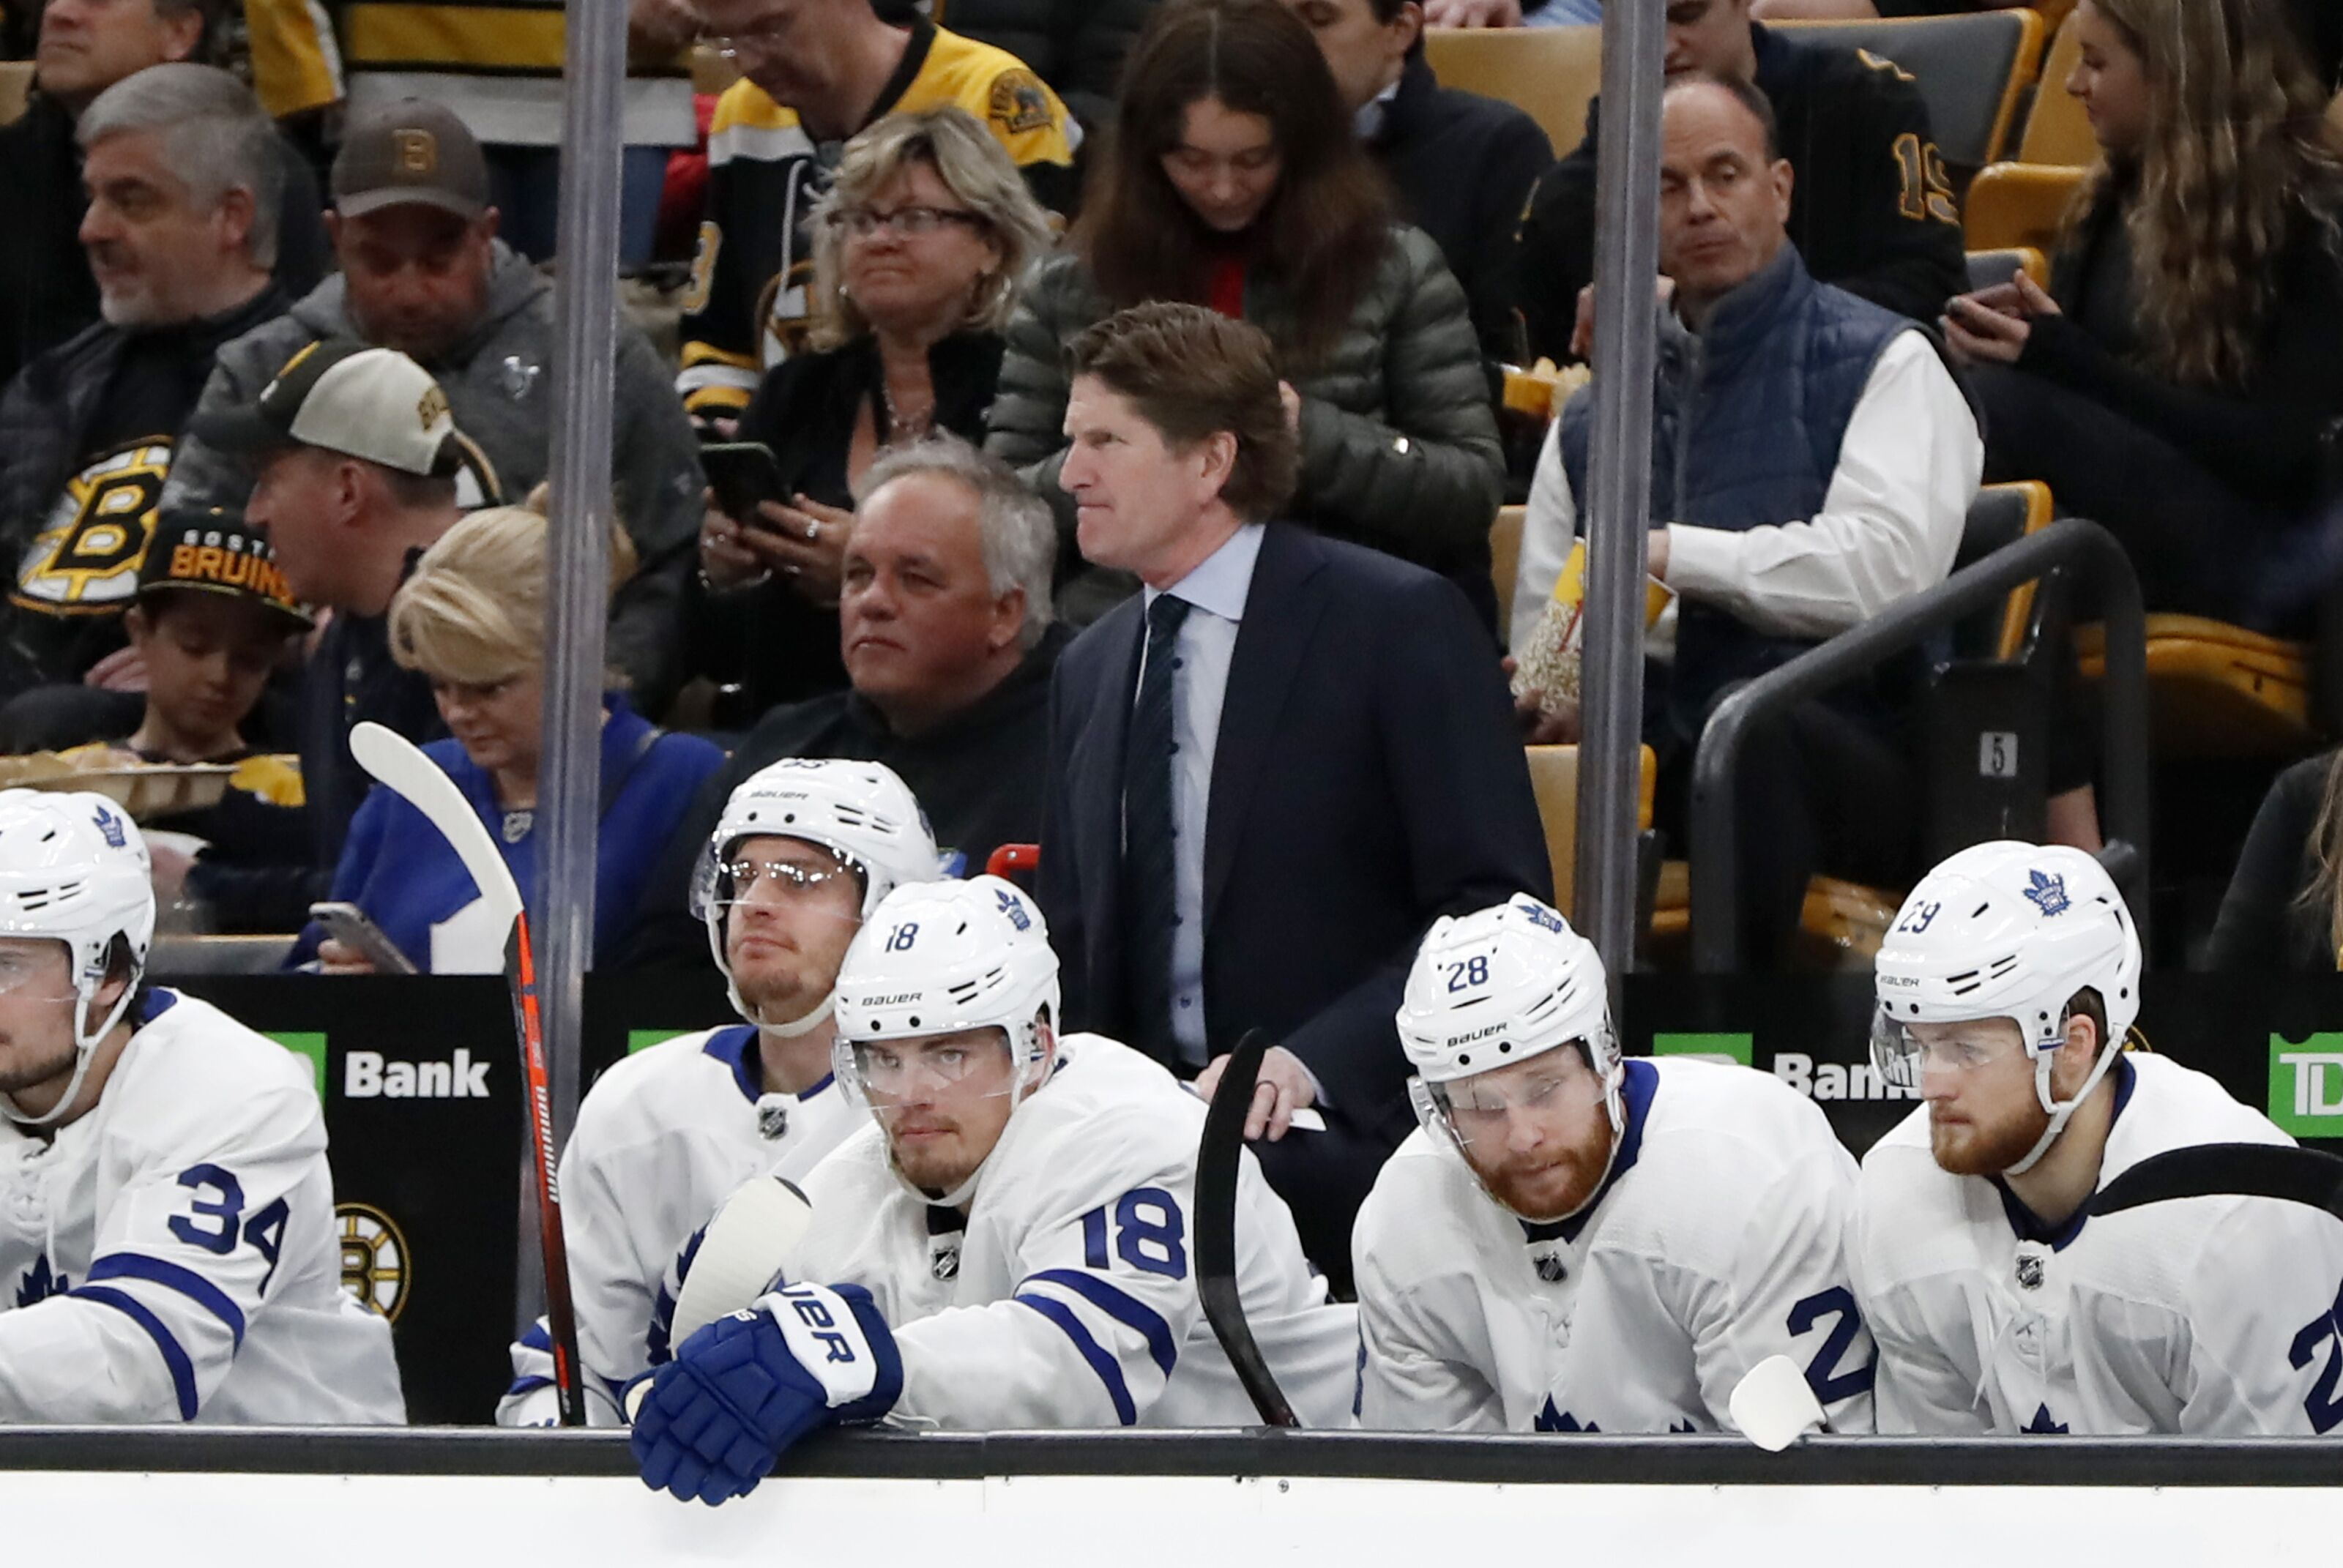 Toronto Maple Leafs: 3 burning questions for the 2019-20 season